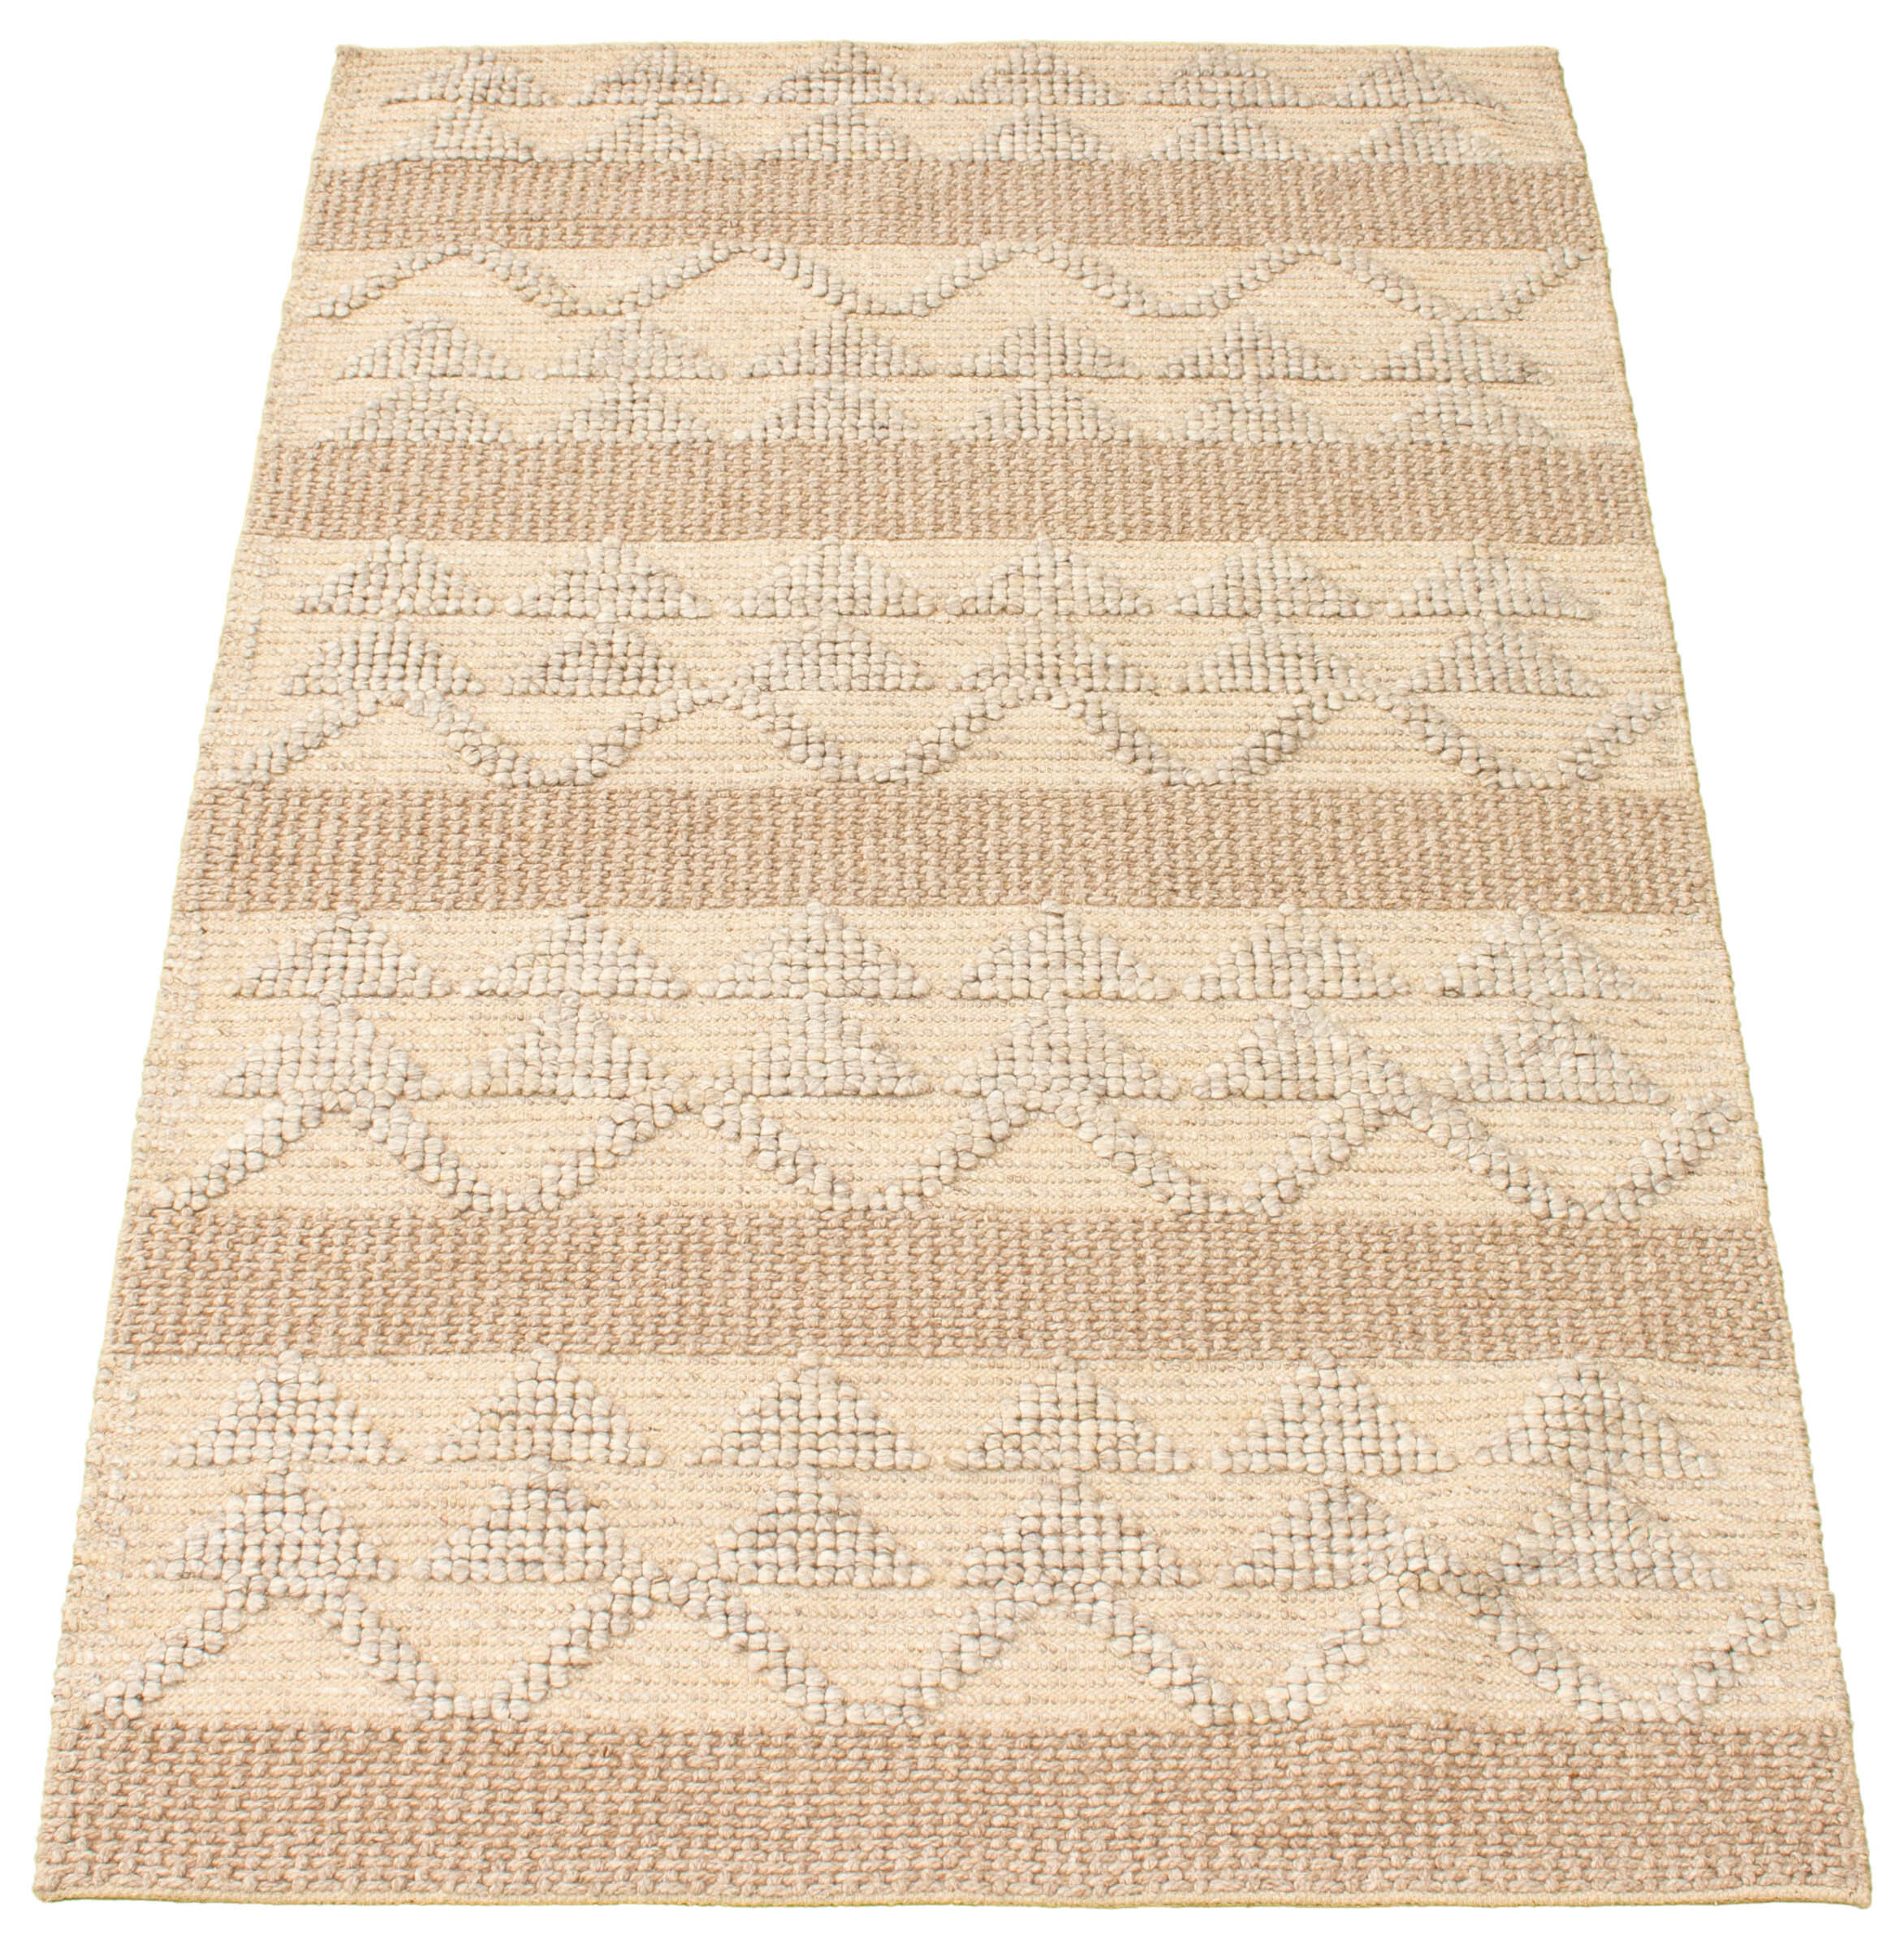 Foundry Select Linhart Geometric Hand Braided Wool Tan Gray Area Rug Wayfair